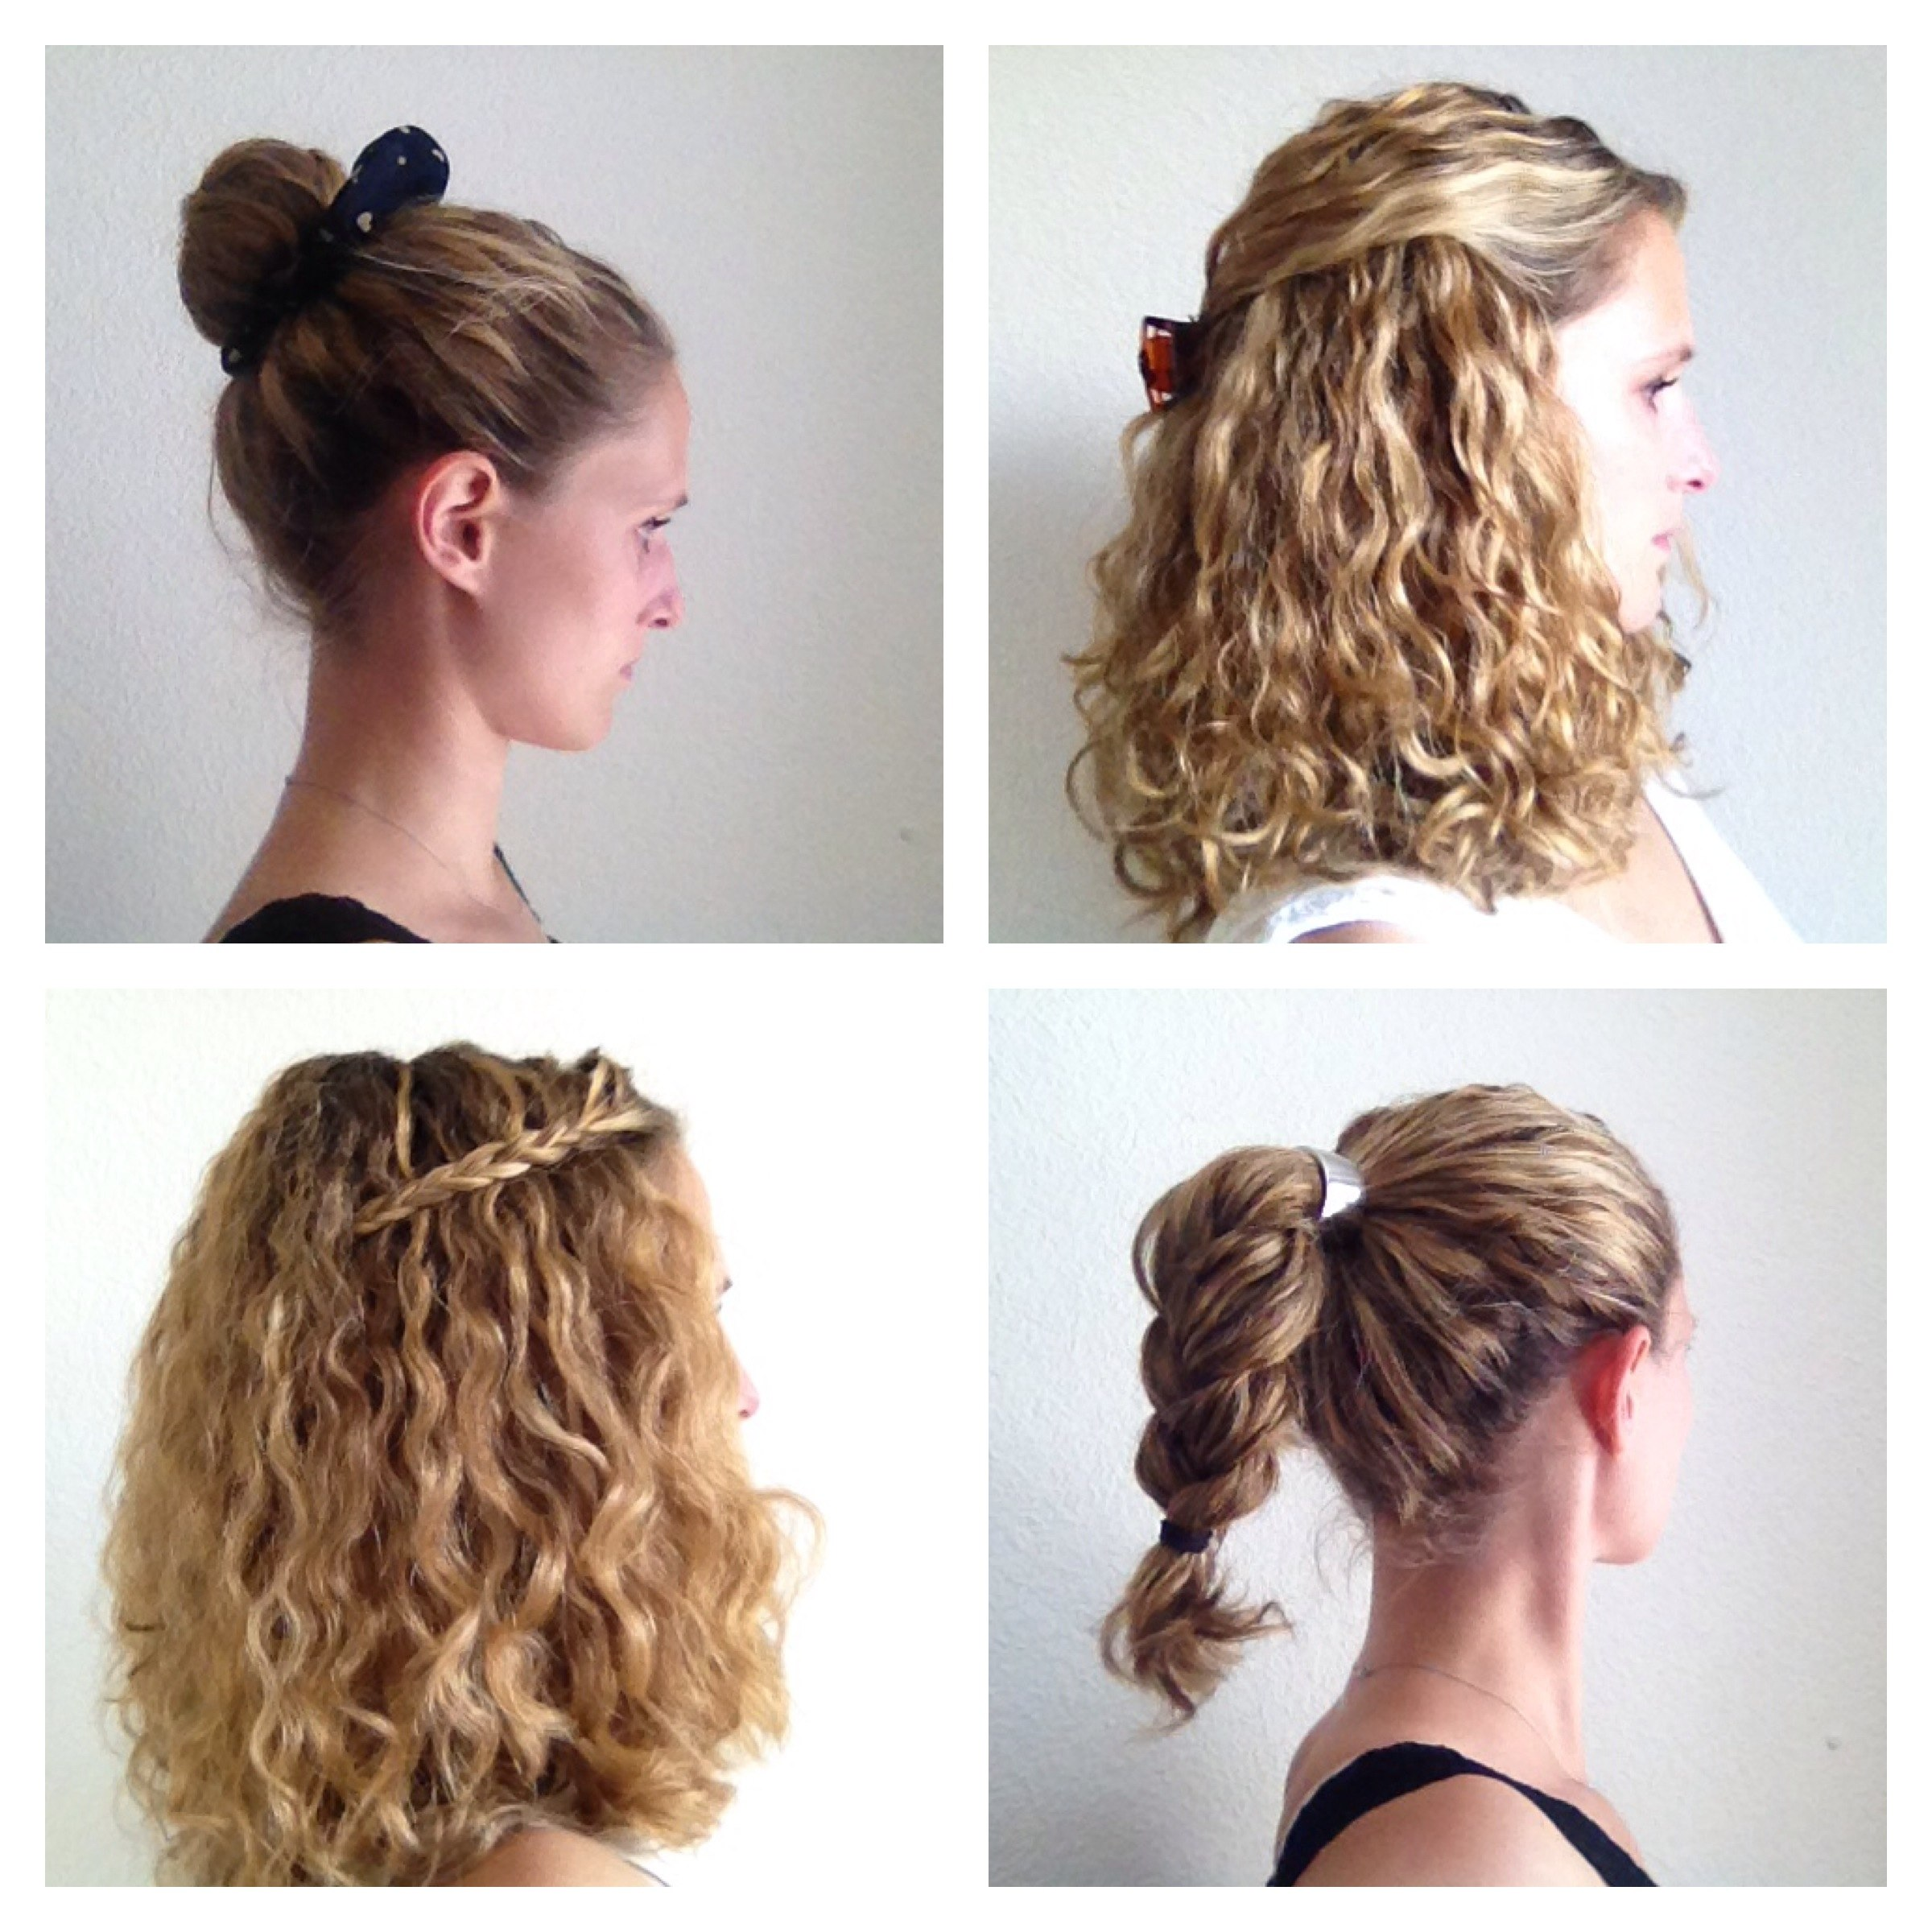 Four styling ideas for curly hair - JustCurly.com